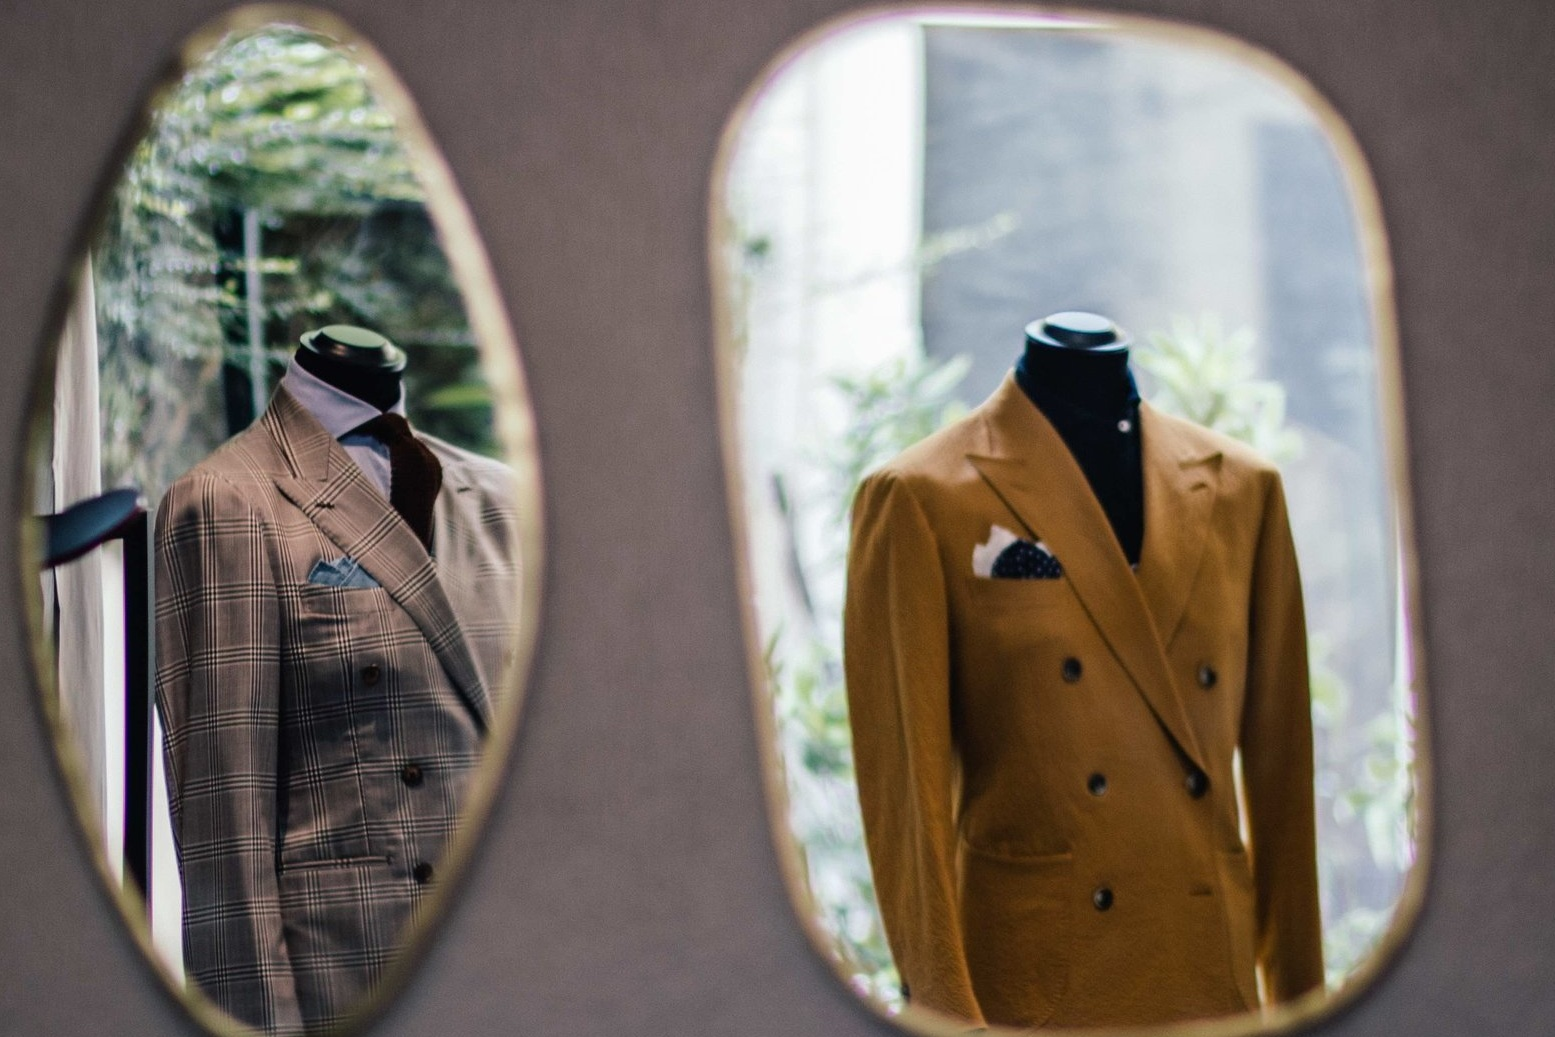 Products - Our vast range of products, personalization options, trims and details allows you to create unique garments tailored around you, reflecting your taste and character: